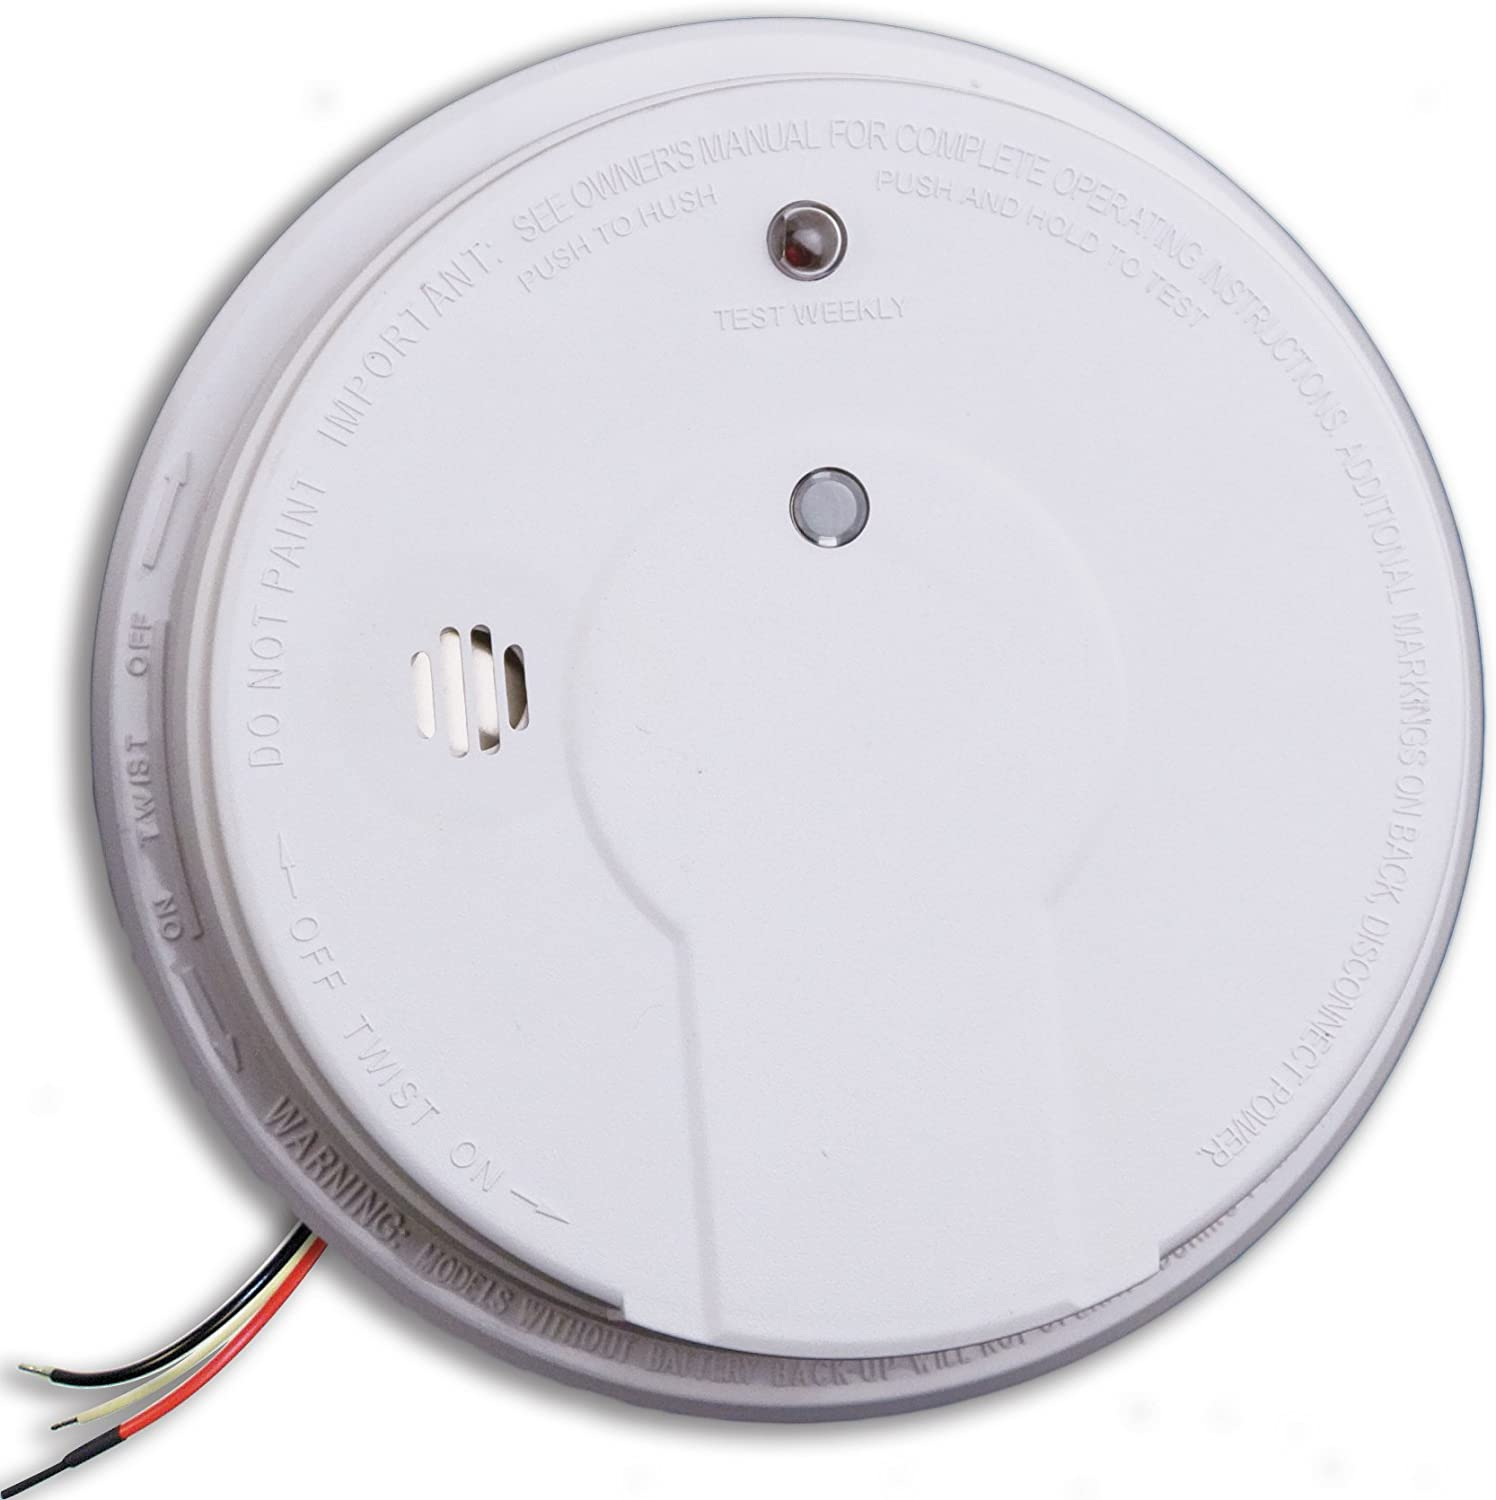 Kidde I12020 Basic Hardwire Smoke Alarm With Test Button Smoke